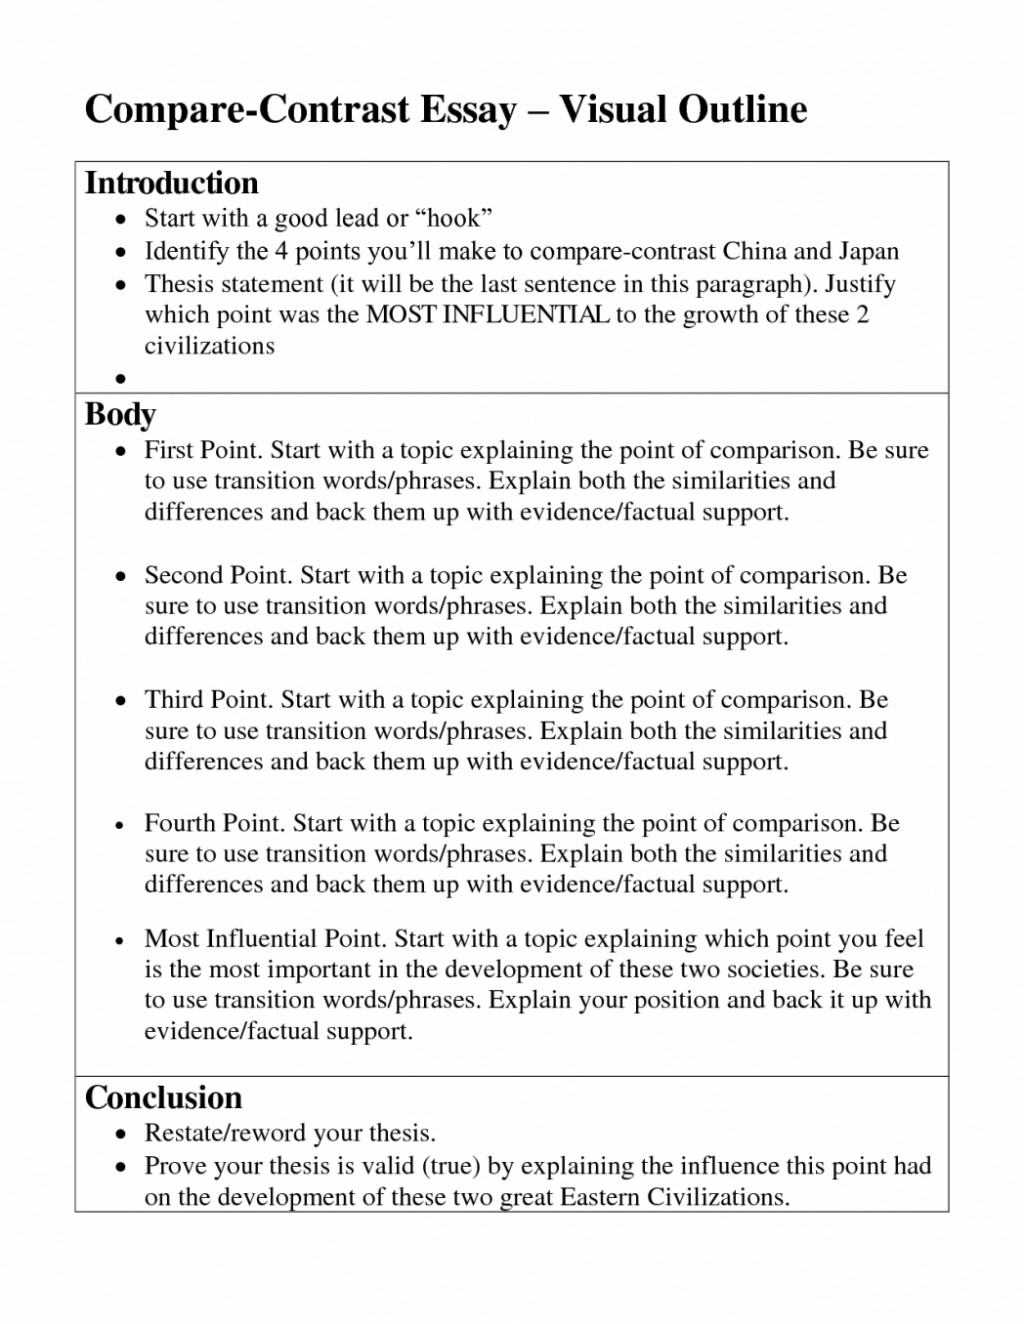 009 Compare And Contrast Essay Topics For High School Students English College Pdf Research Paper 1048x1356 Fantastic Ielts Large